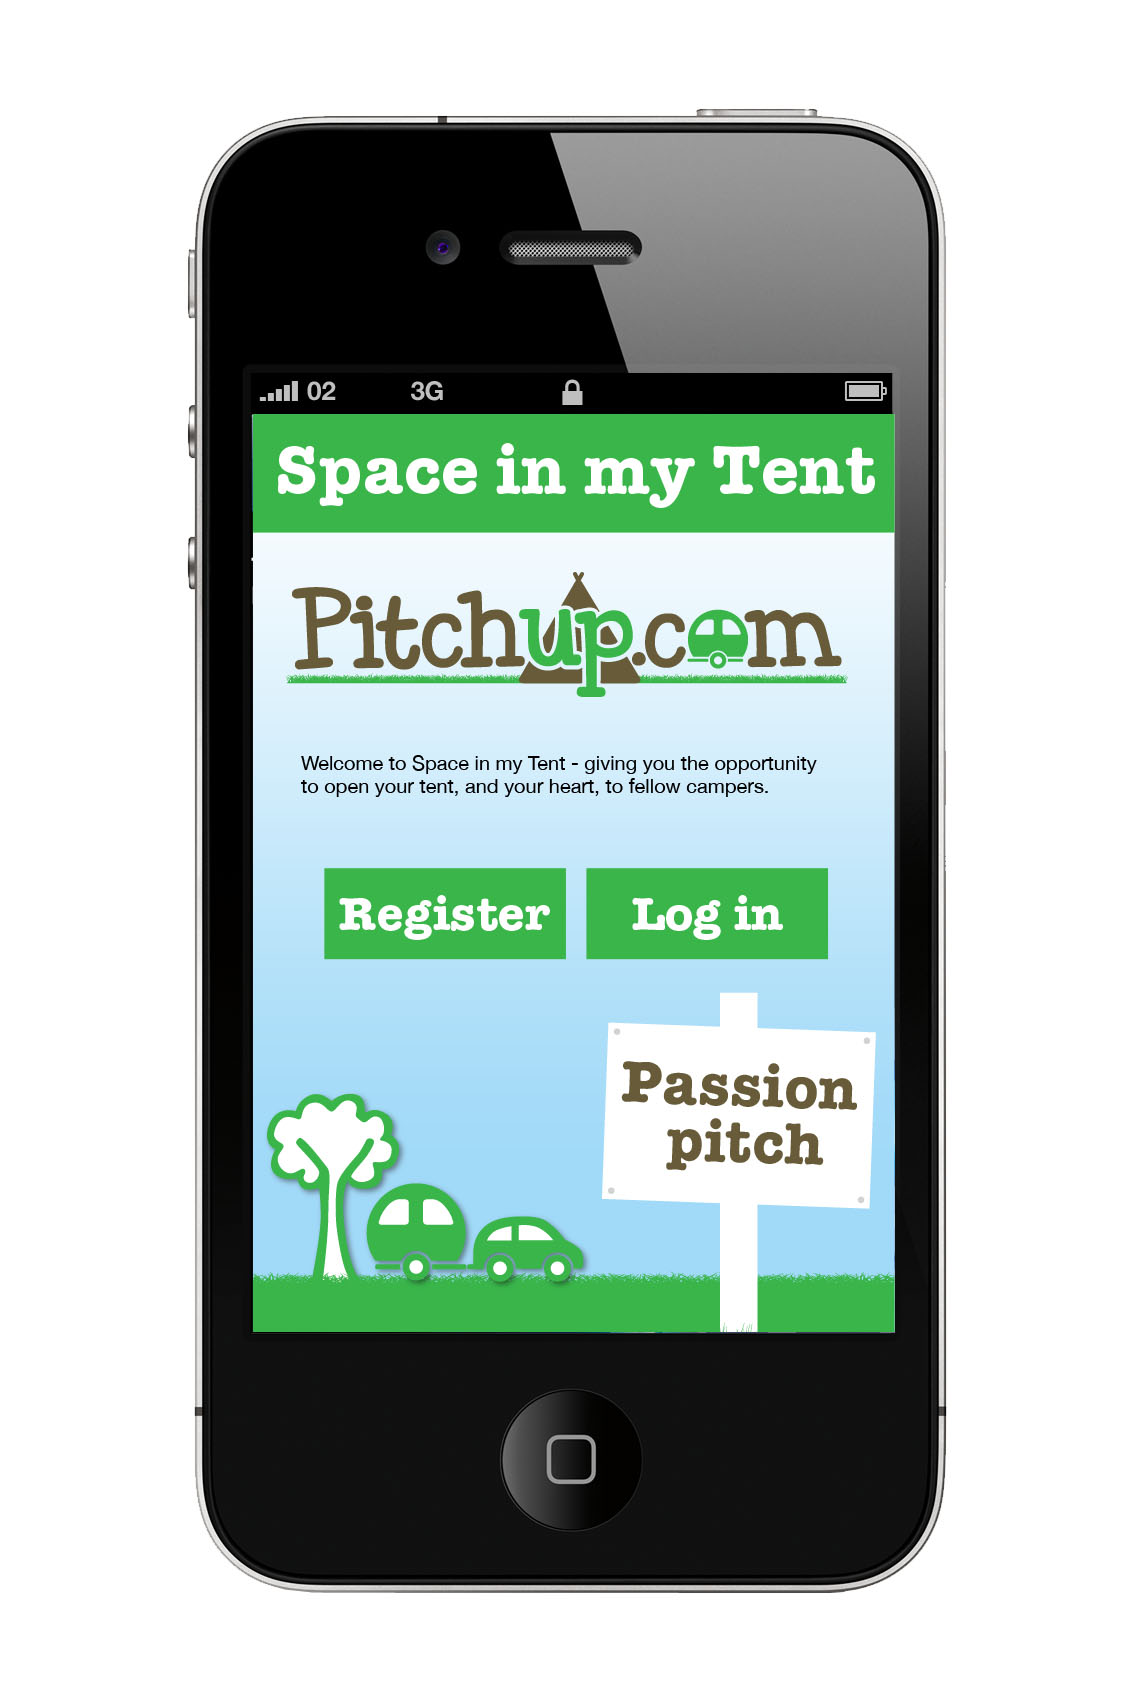 Screenshot of 'Space in my tent' app for iPhone